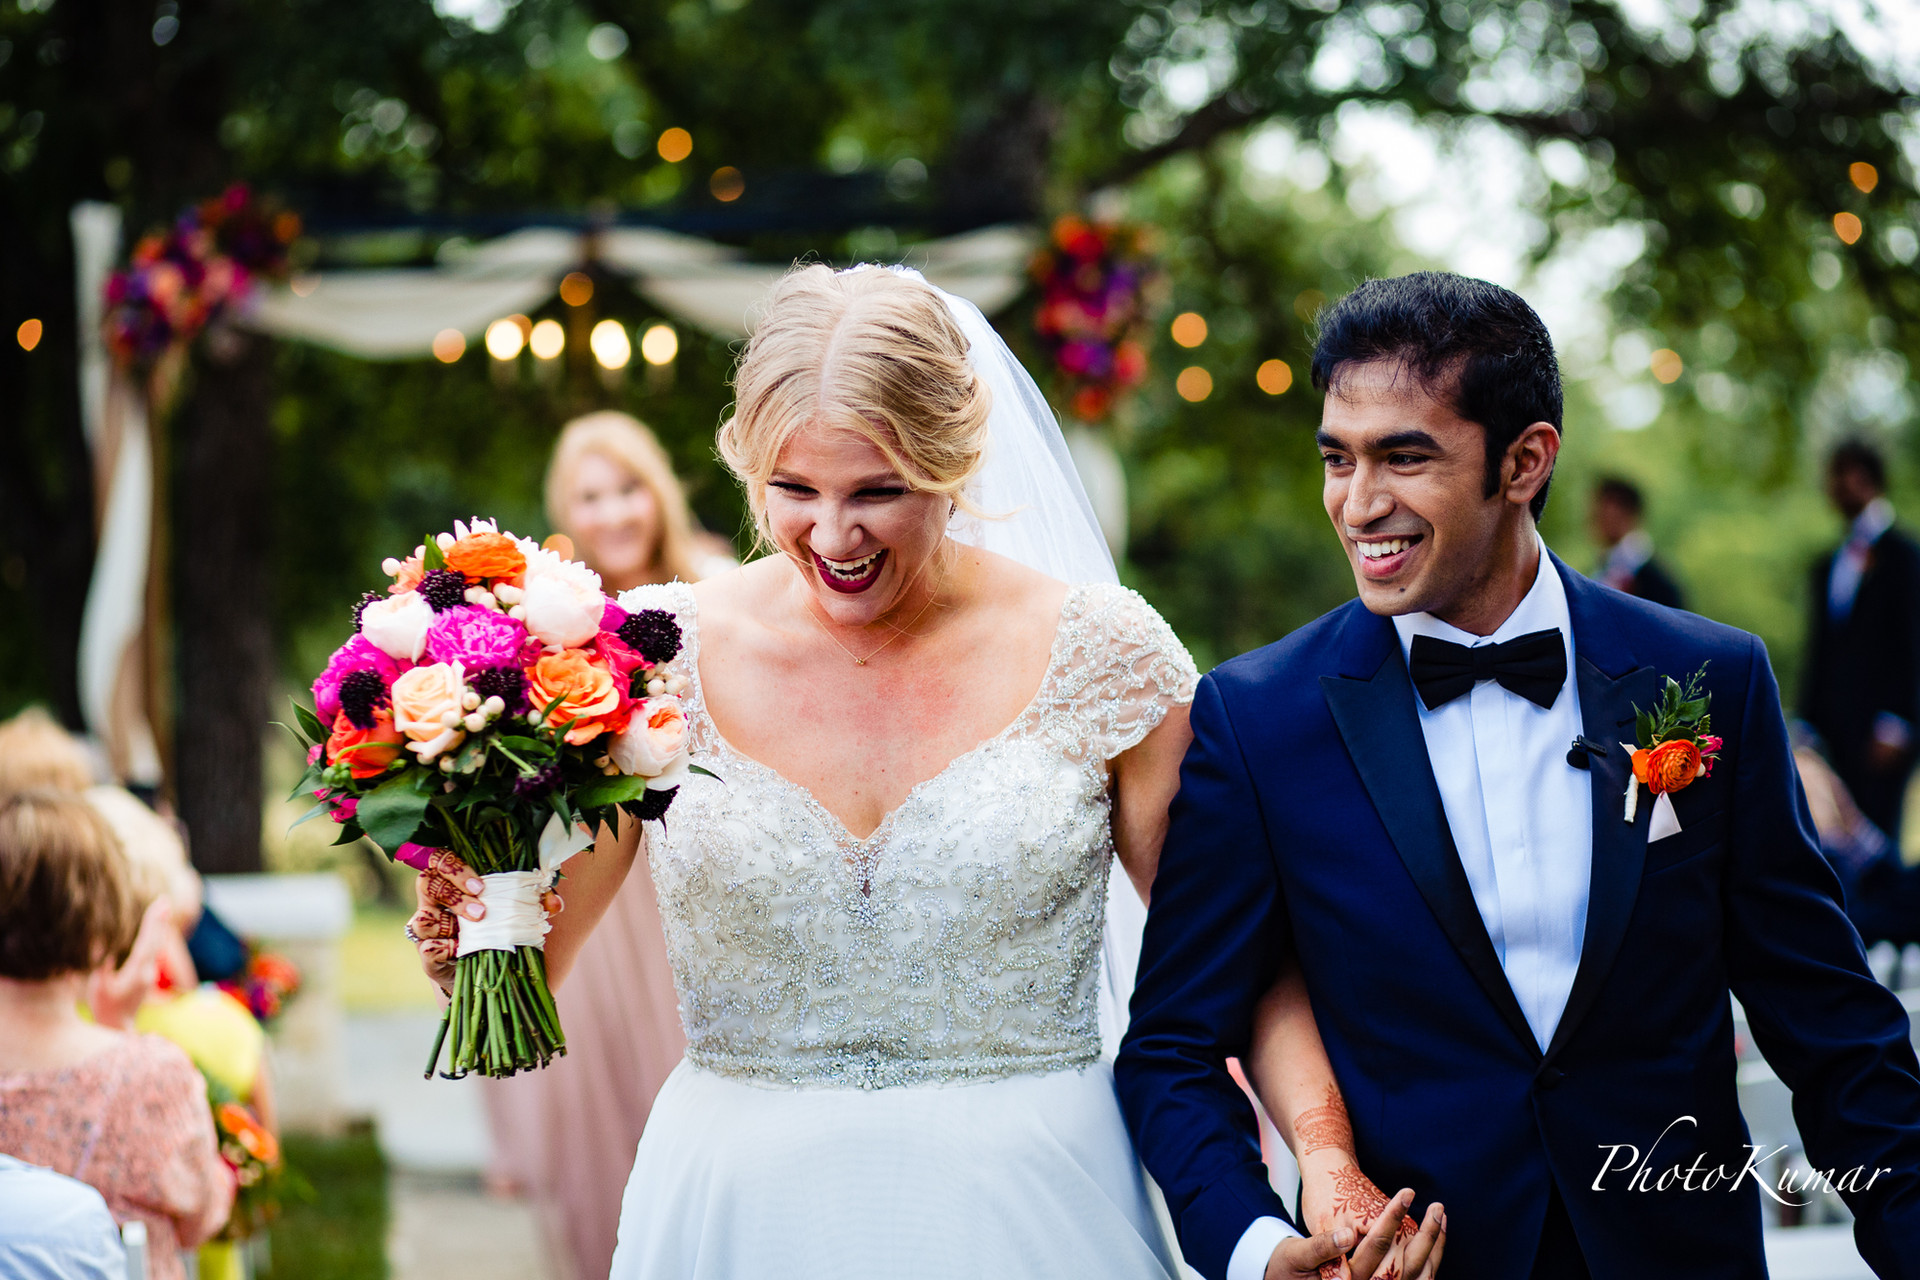 PhotoKumar-Jackie and Sid-Wedding (41 of